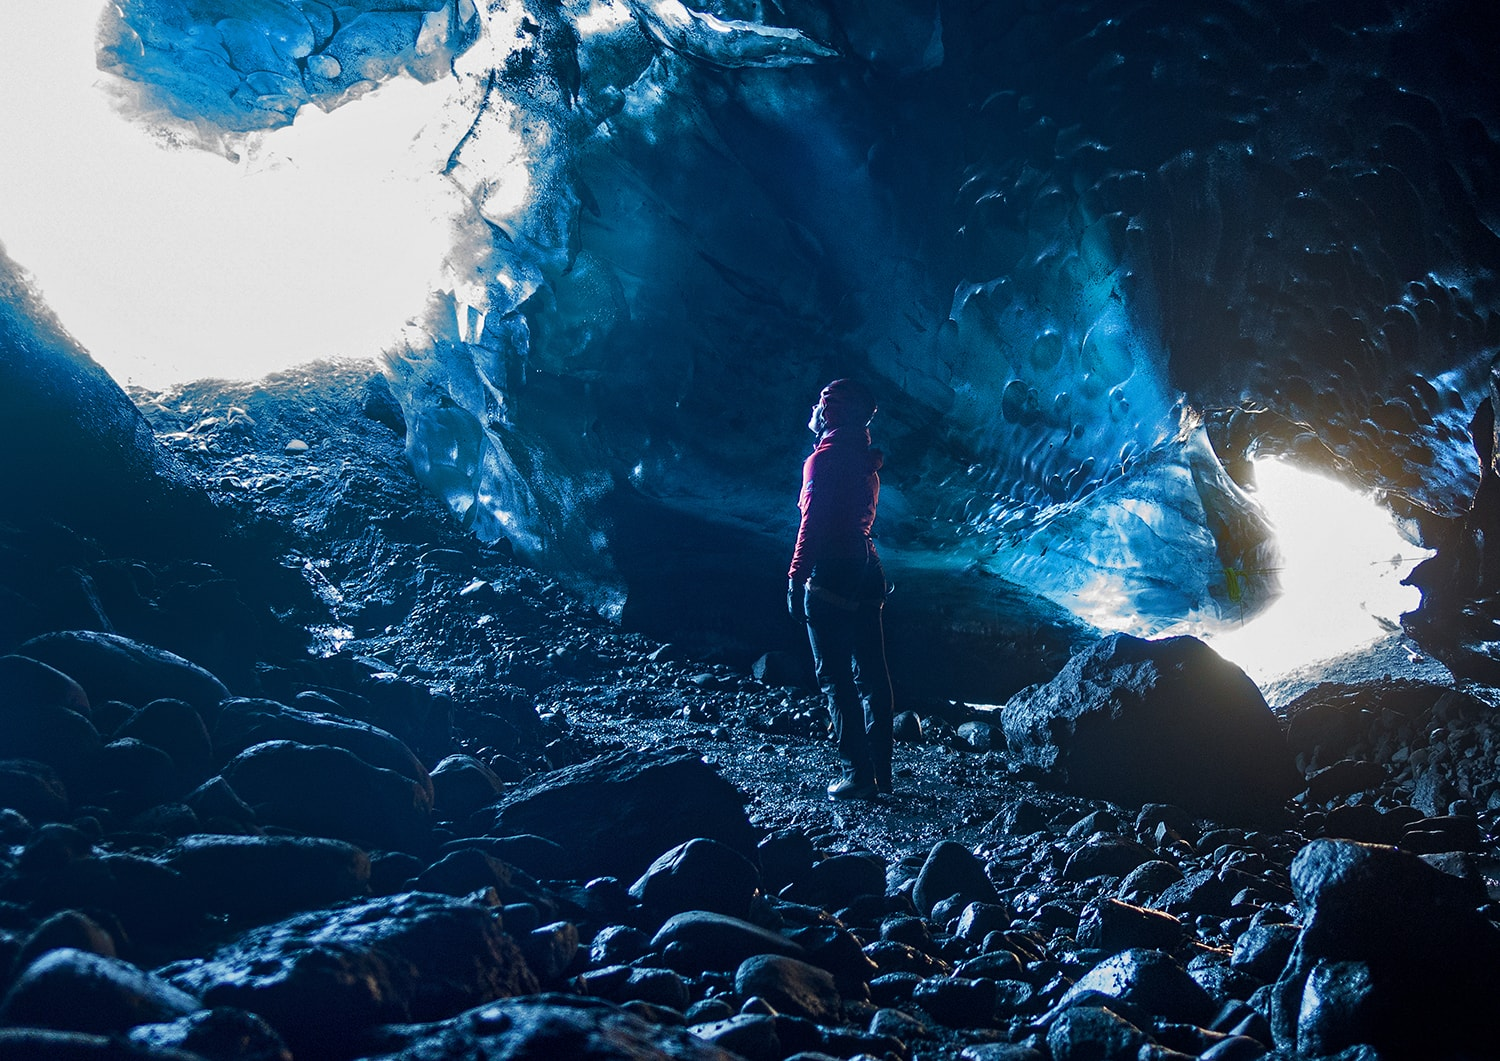 Inside the ice cave